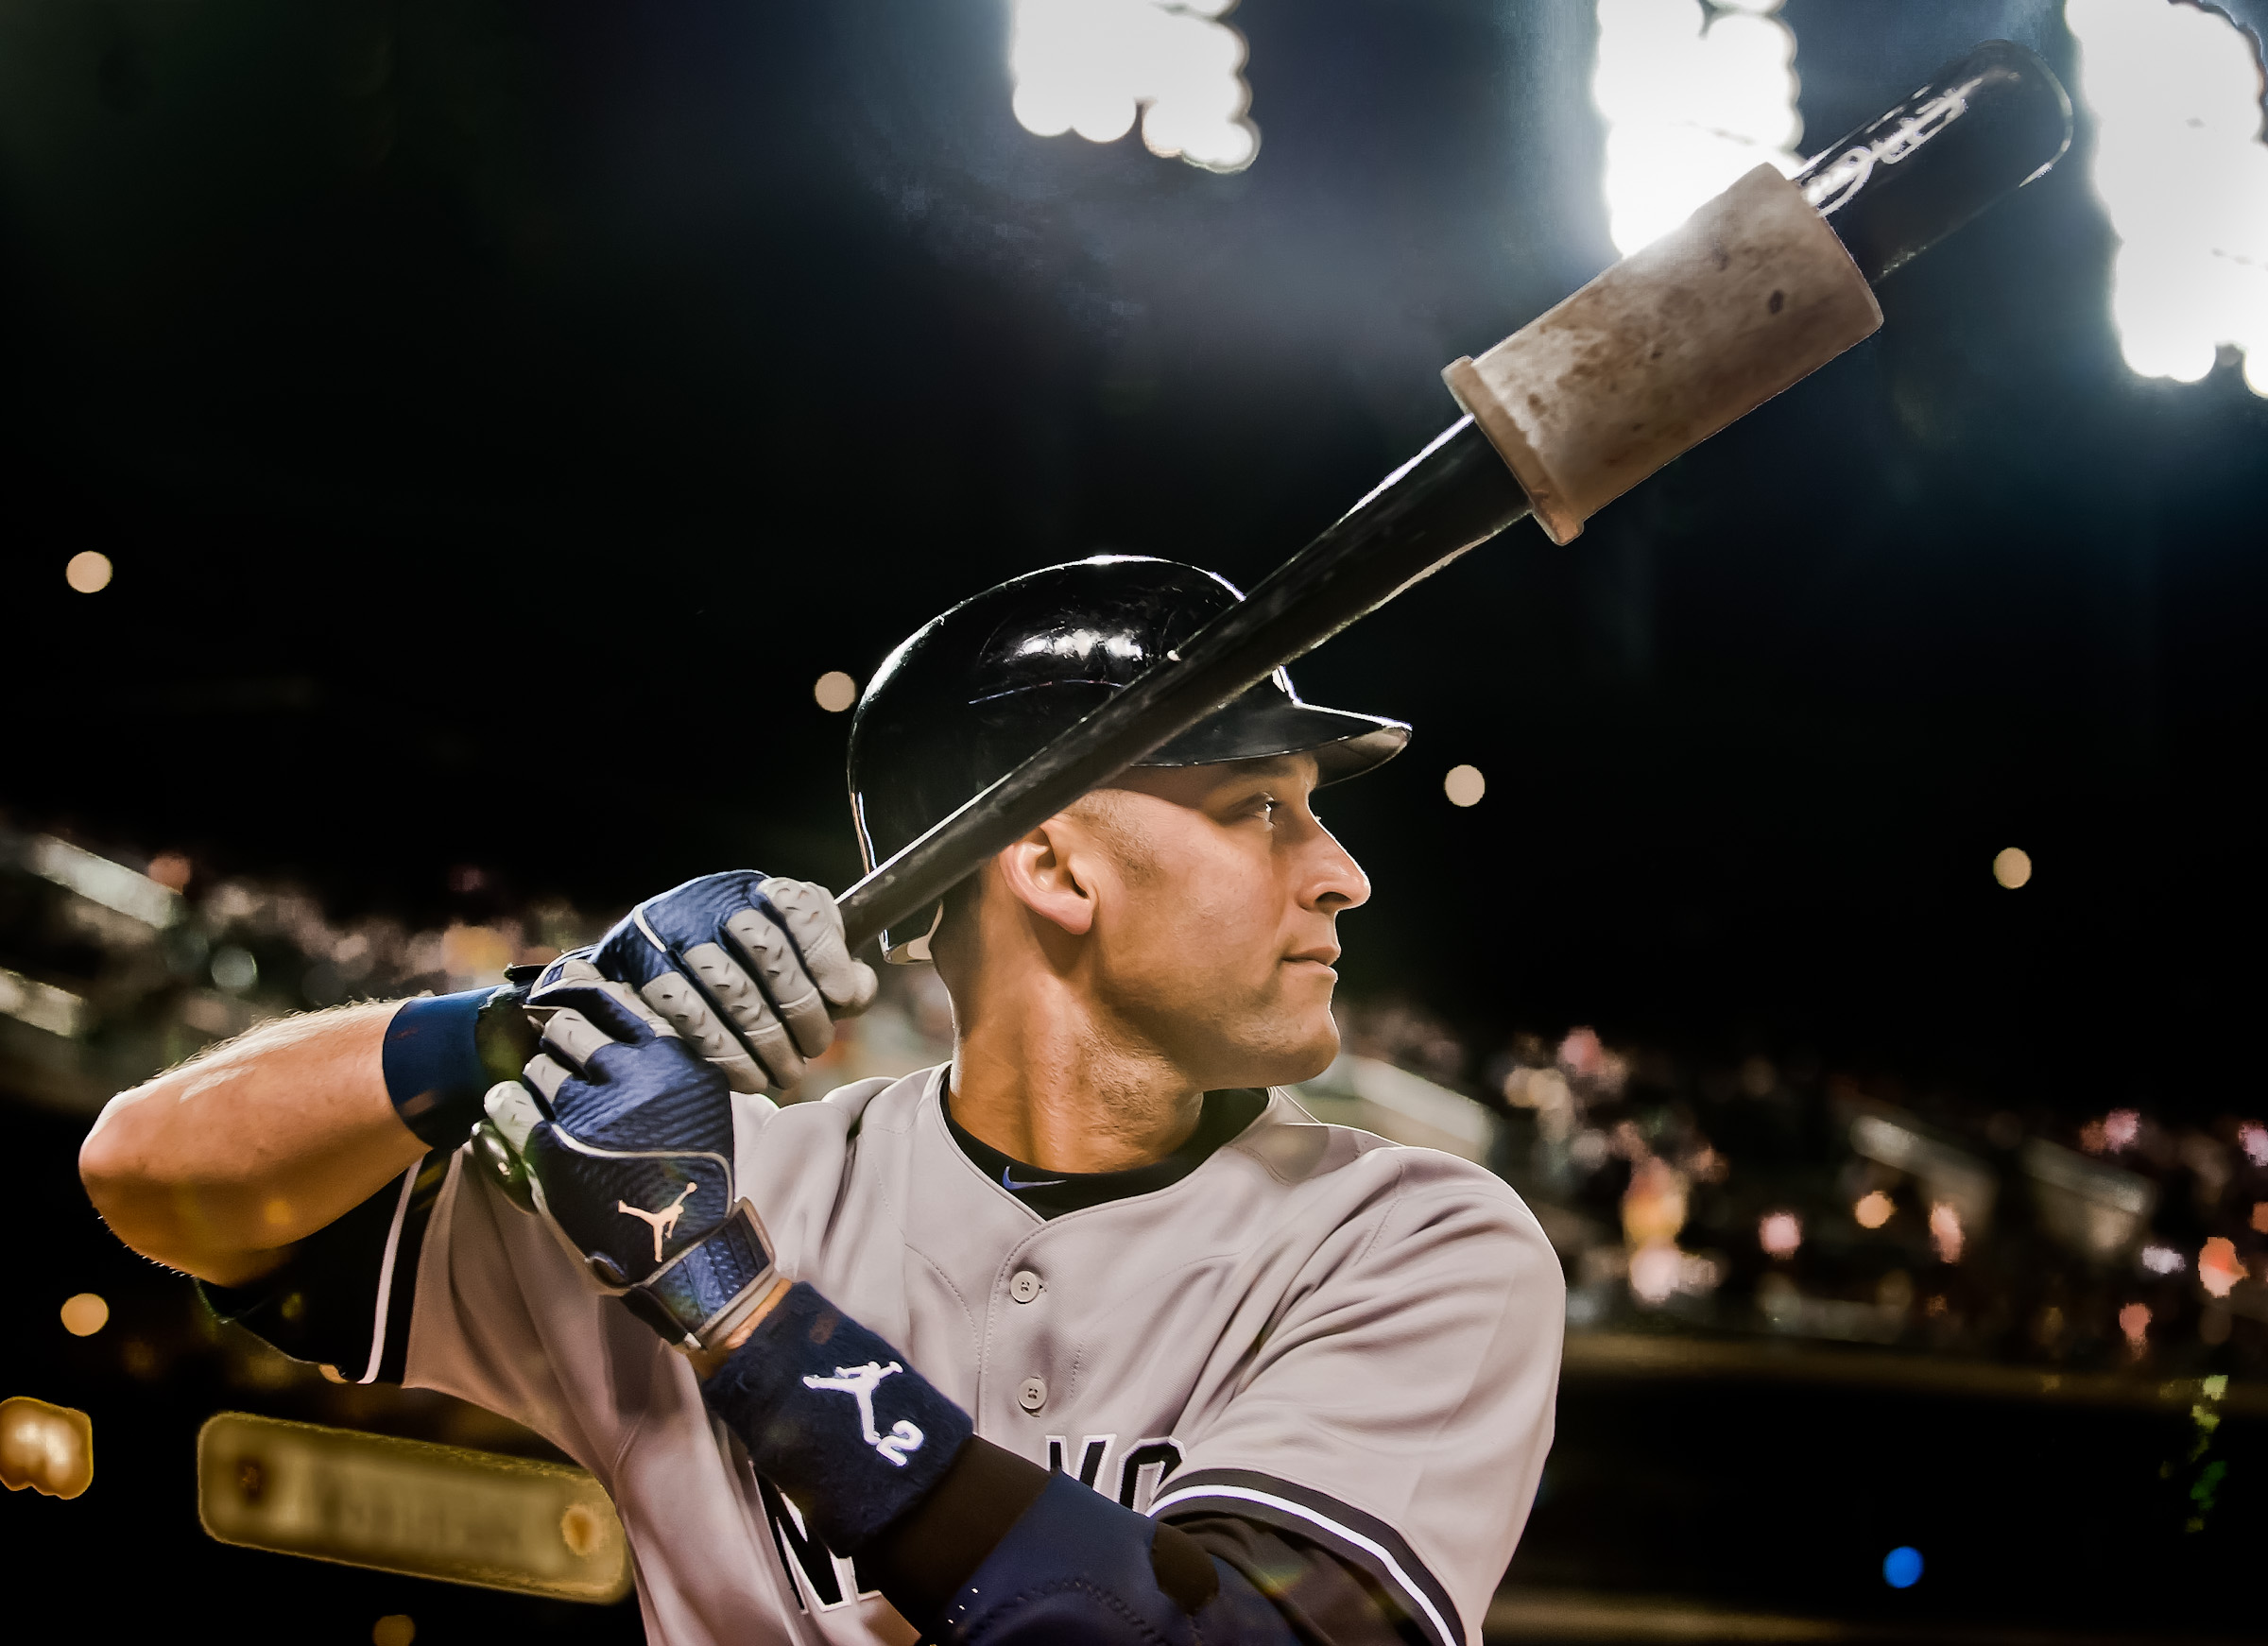 Derek Jeter_Adam Jacobs Photography.jpg